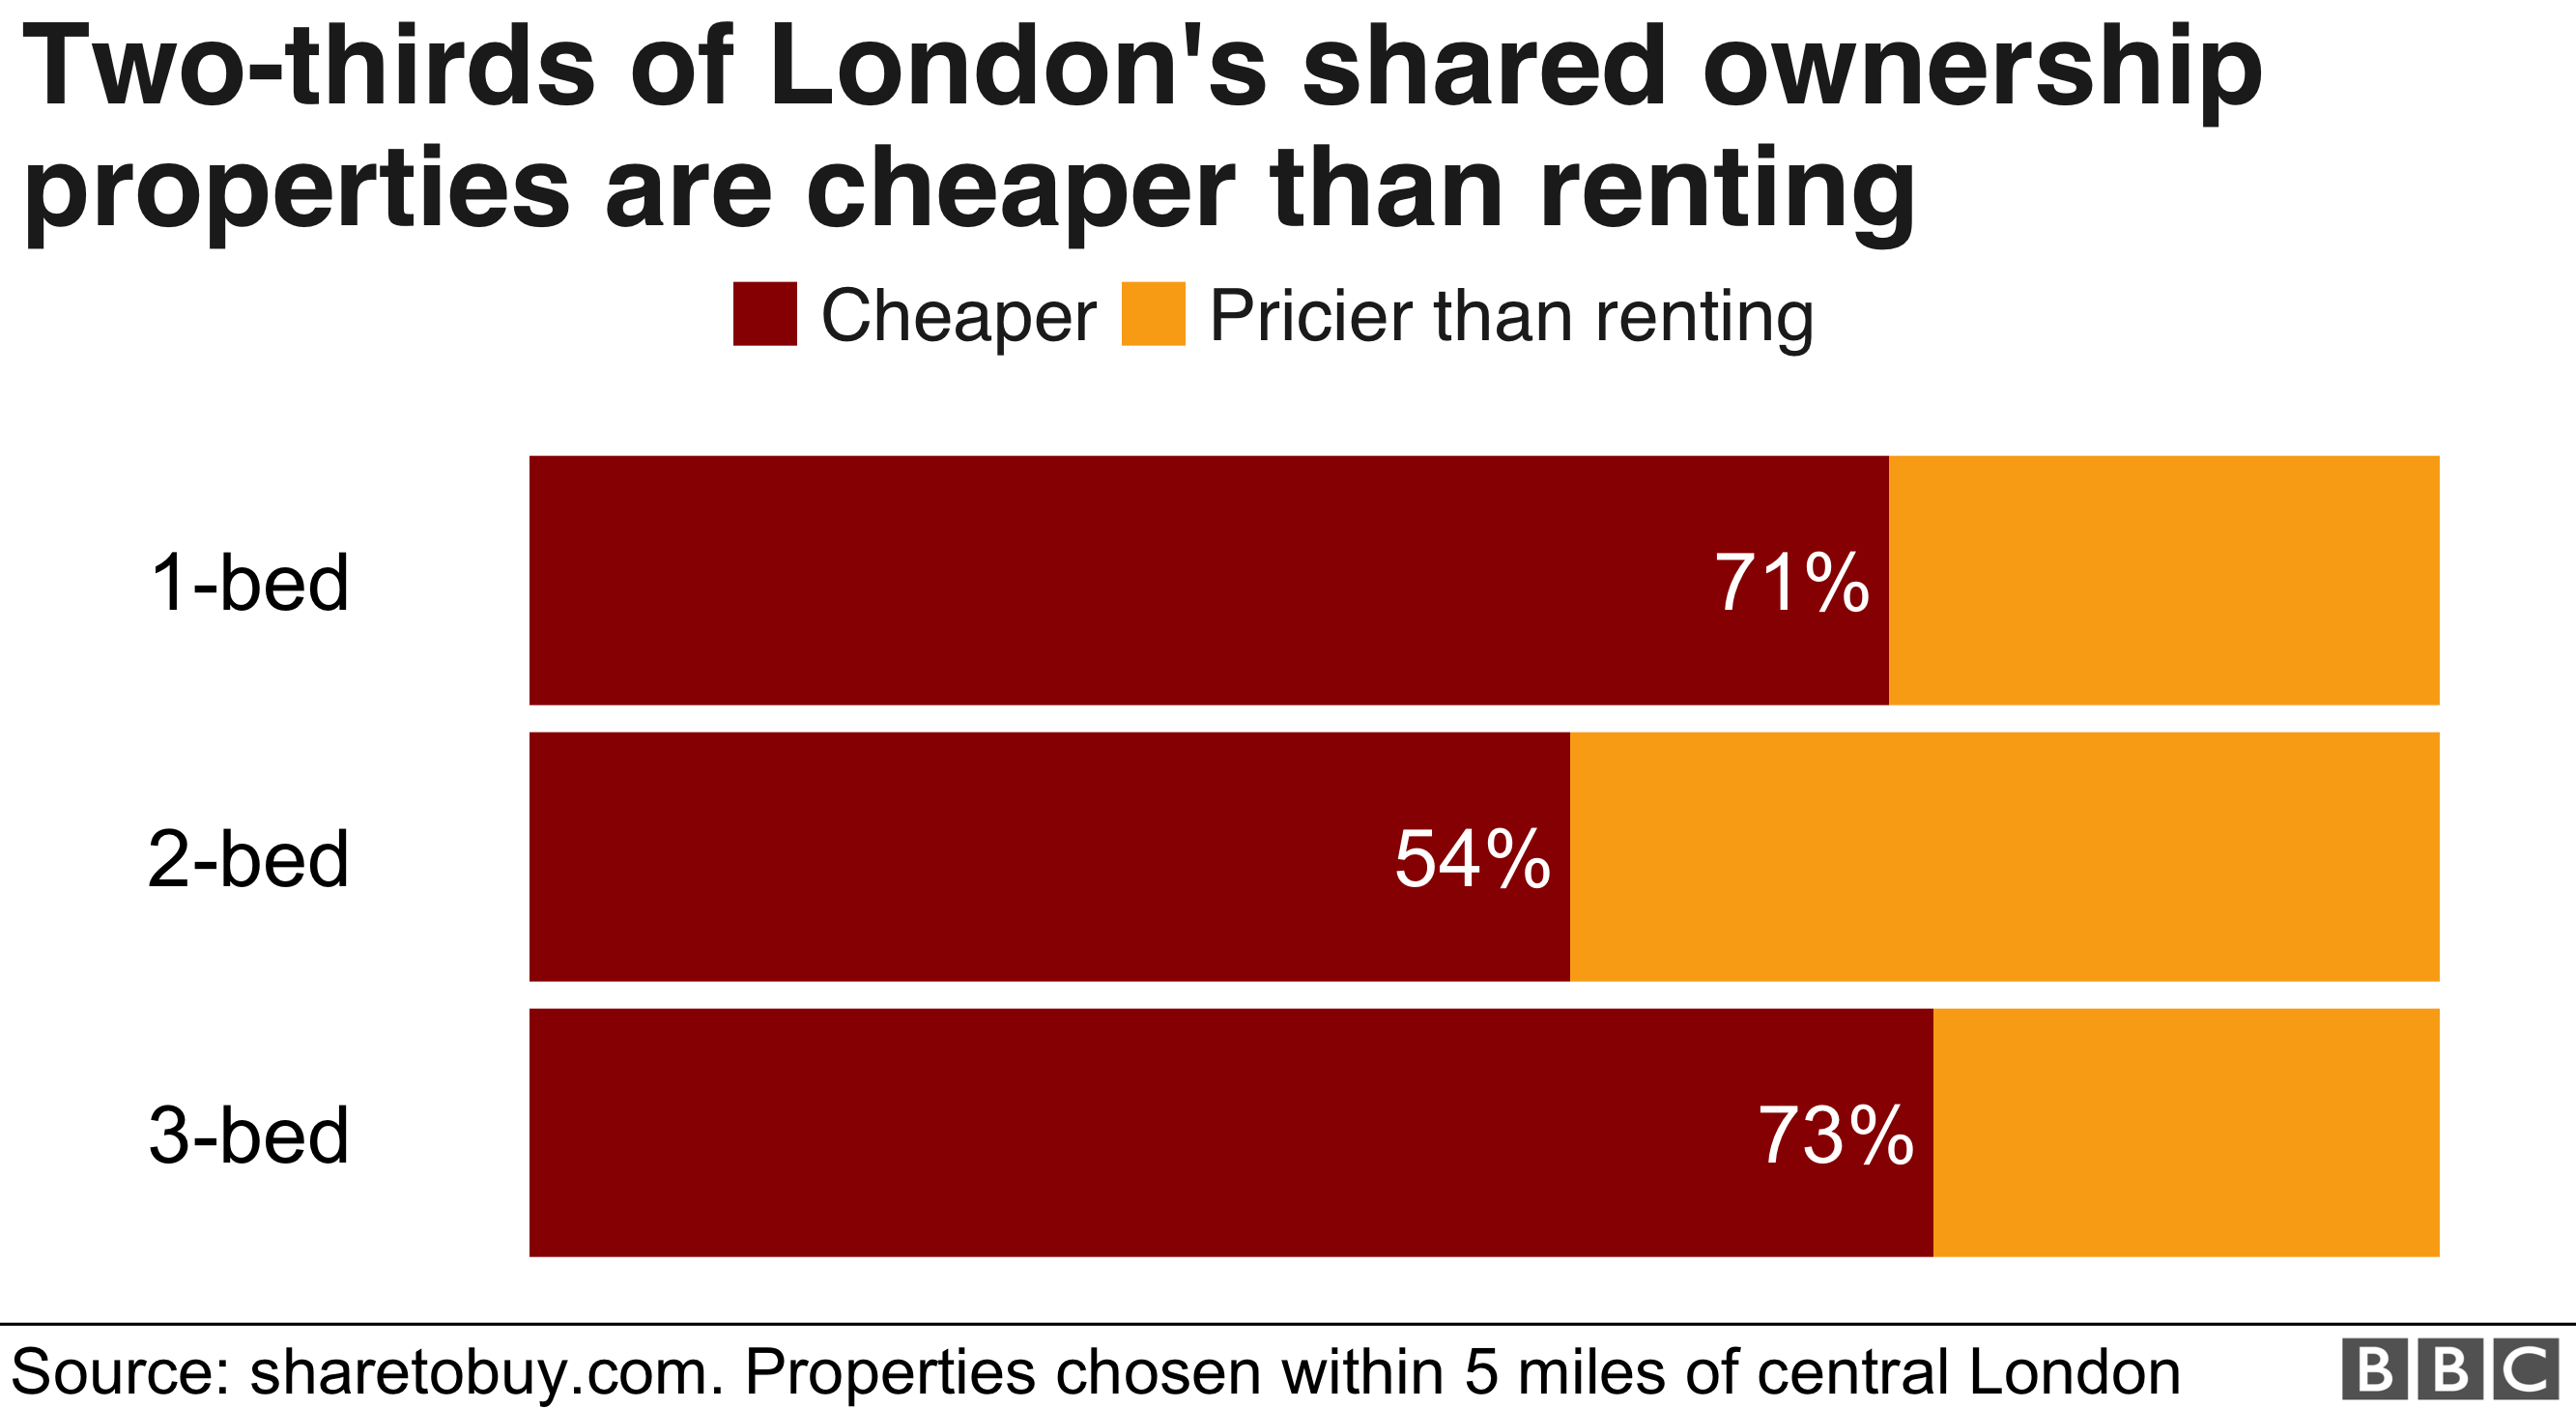 Chart: Two-thirds of shared ownership properties in London are cheaper than renting